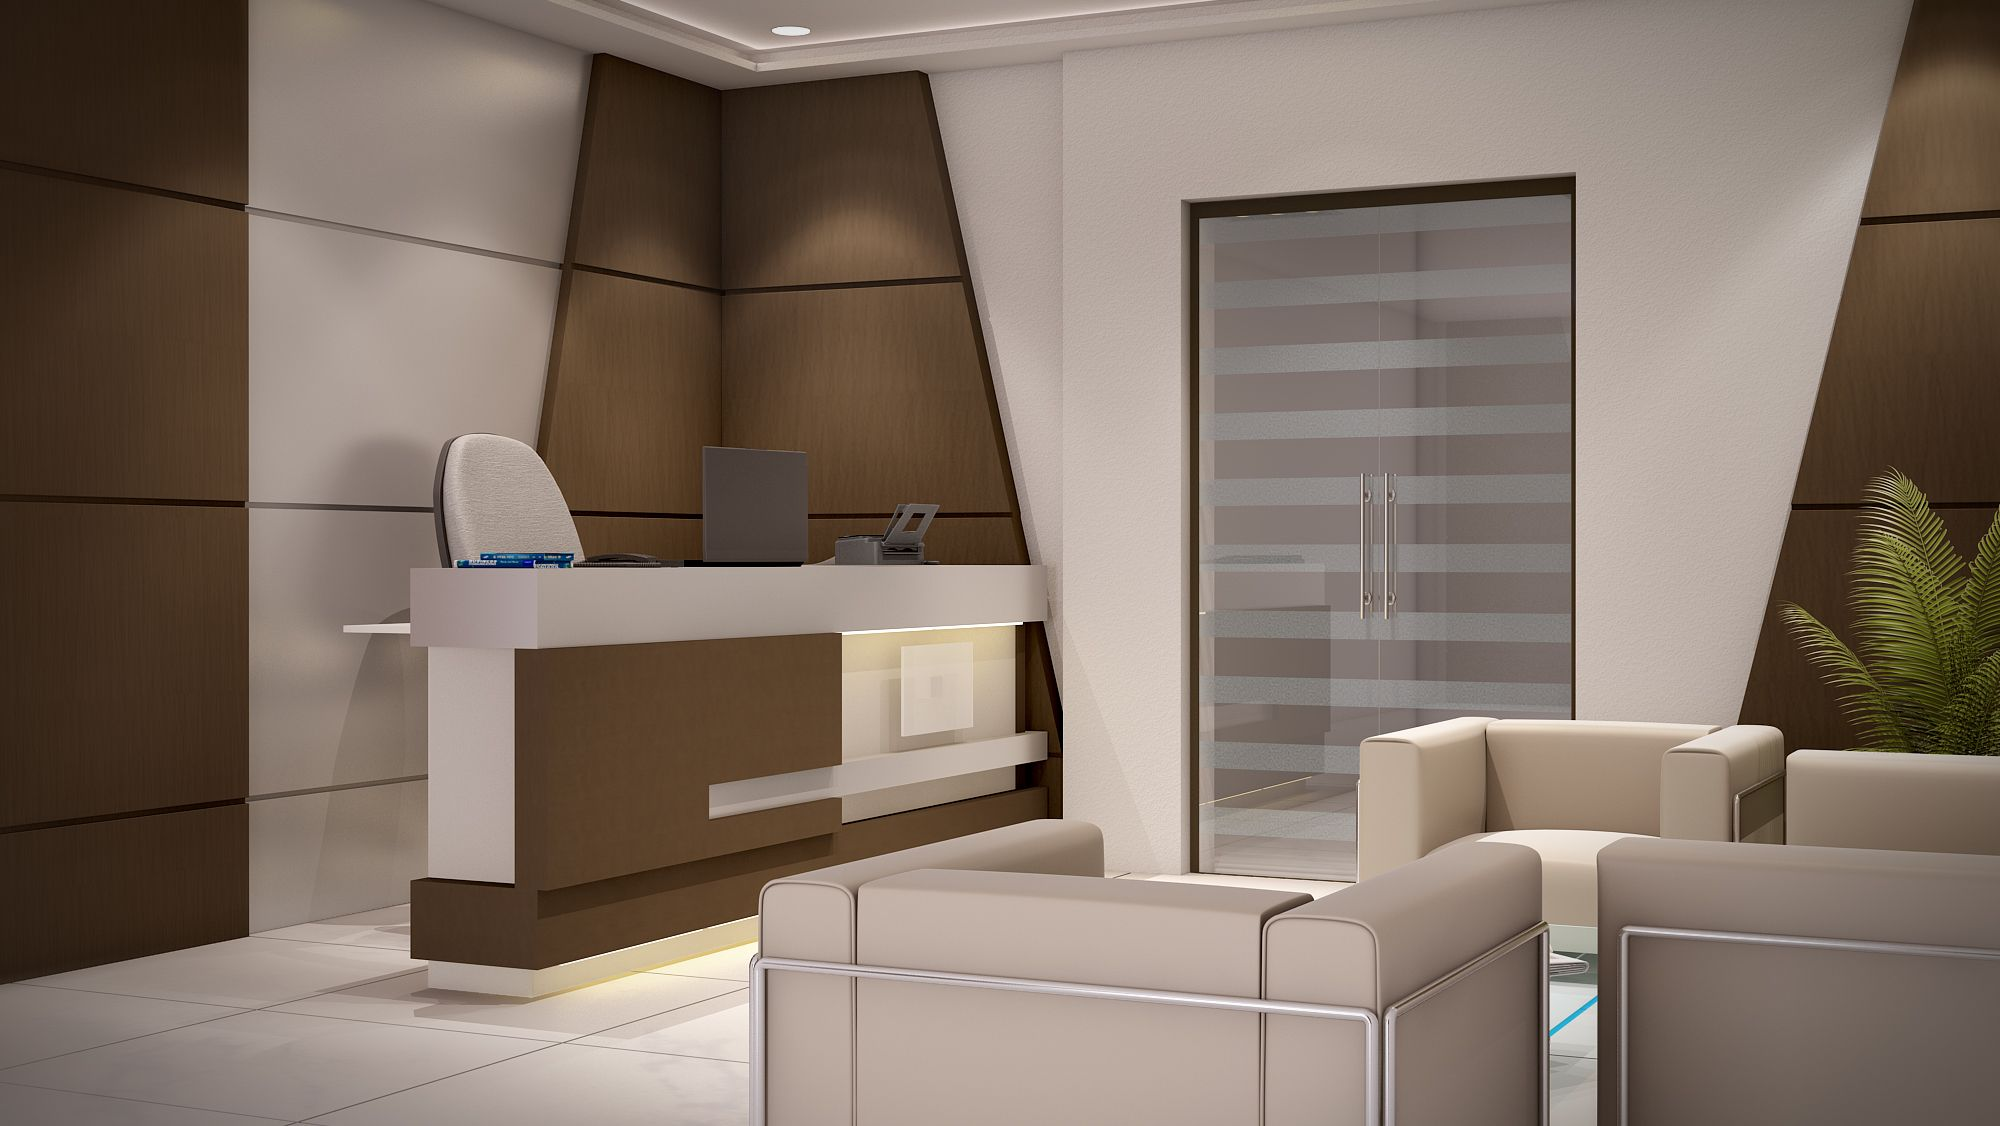 Sample of 3d office interior design and rendering for more samples visit our portfolio